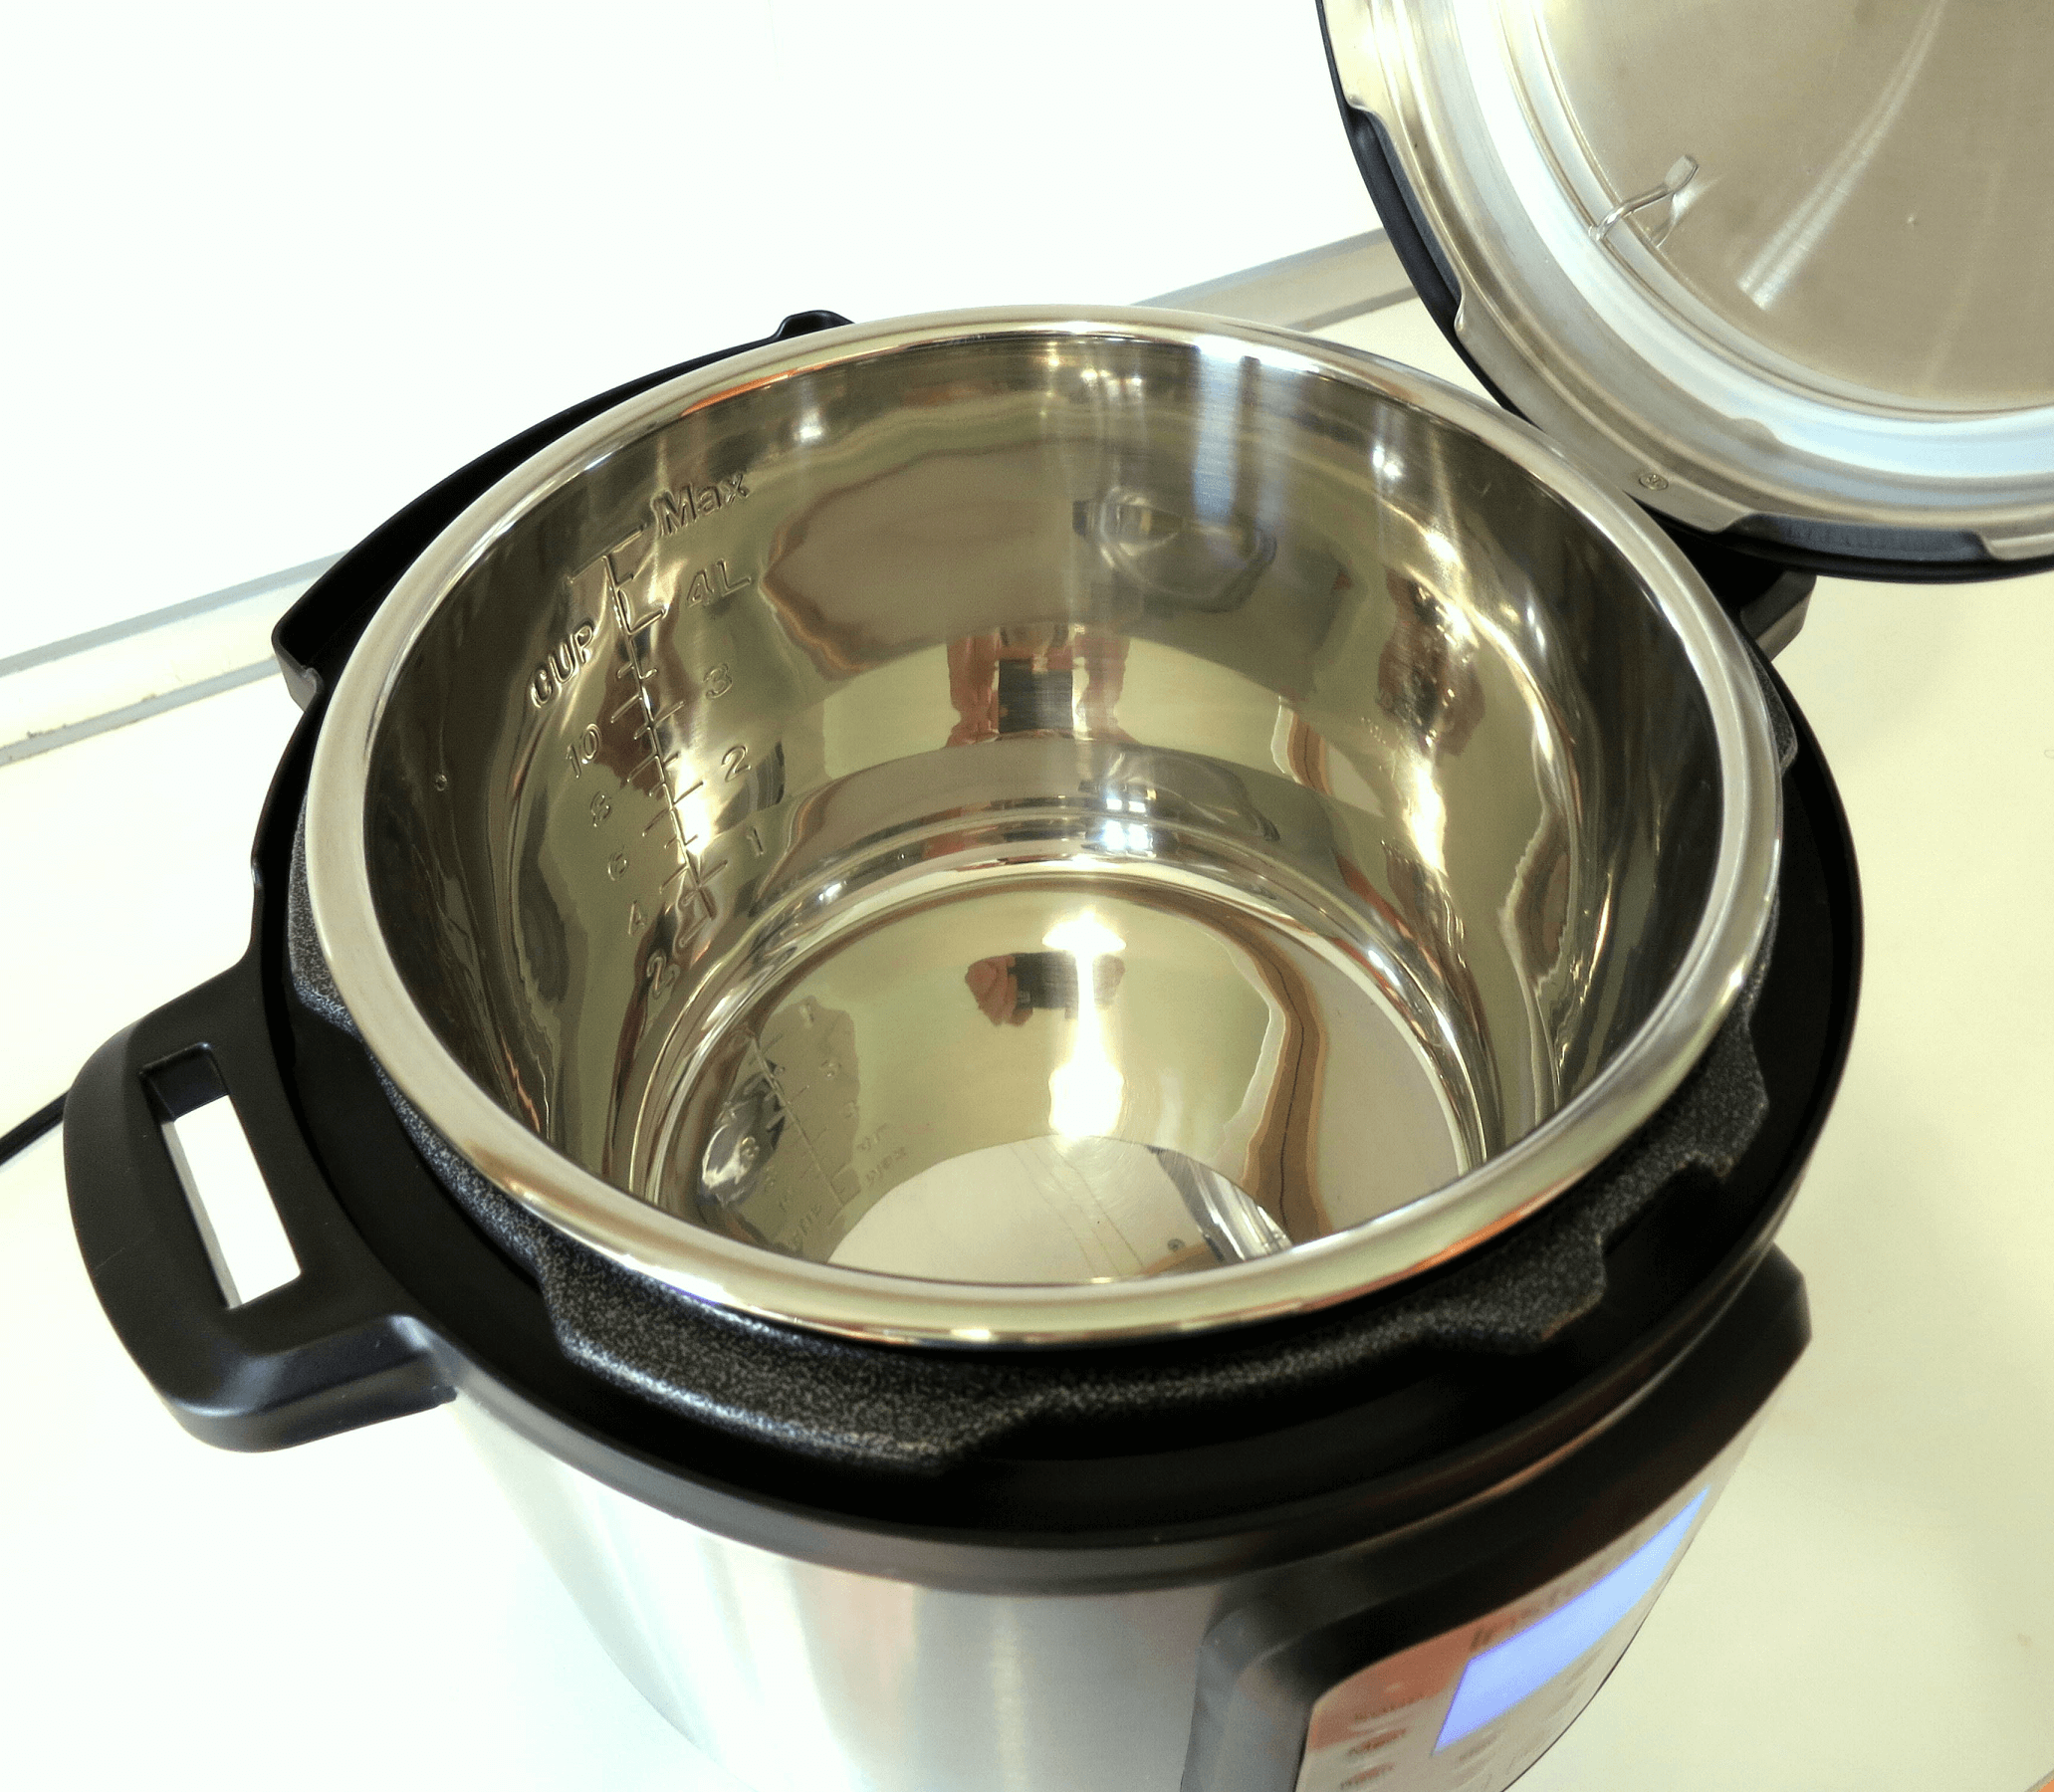 How to Clean a Burnt Pressure Cooker Pot without Scrubbing